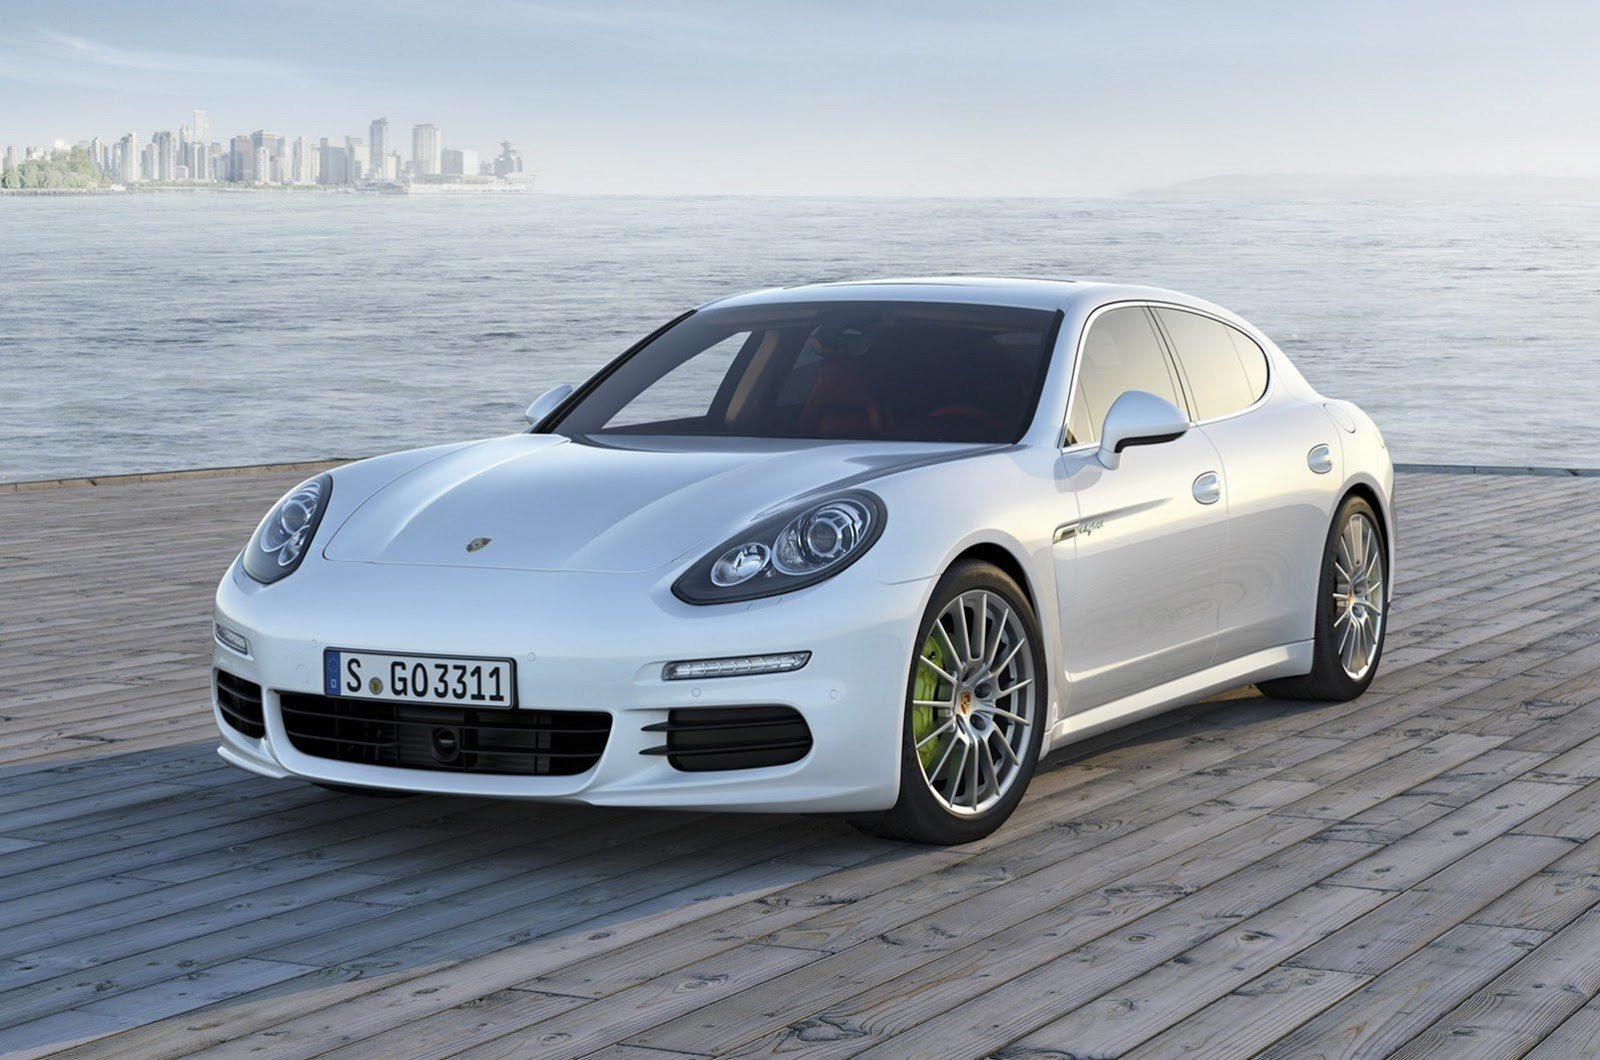 Latest 2014 Porsche Panamera Facelift First Photos Leaked Free Download